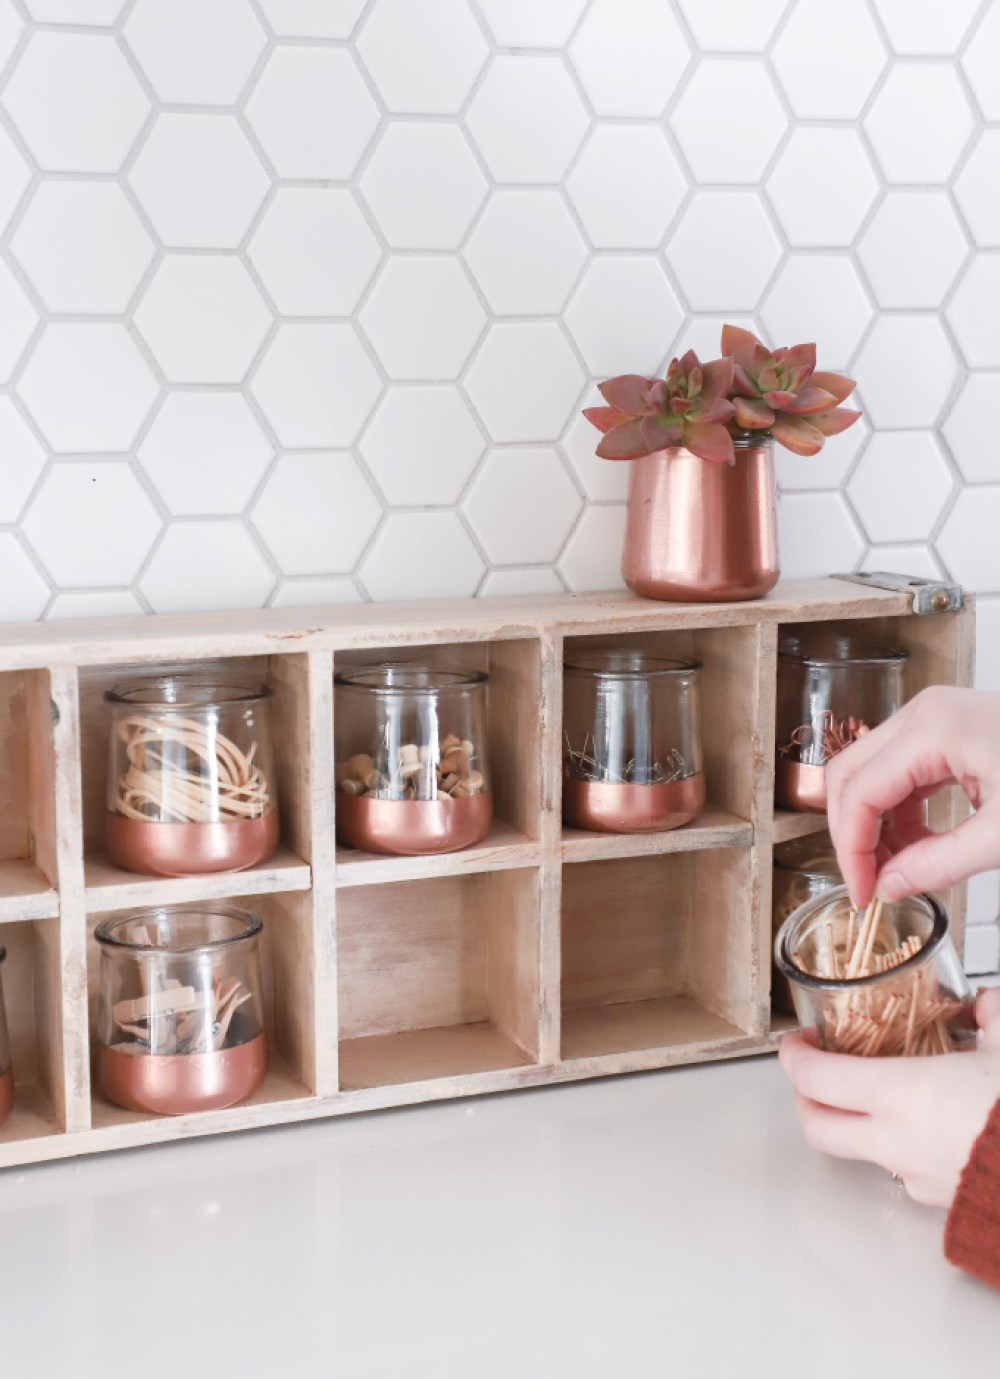 15 Stylish DIY Projects for Organizing Your Home: Upcycled Glass Jars #organizing #diy #diyhome #clutterbustingtips